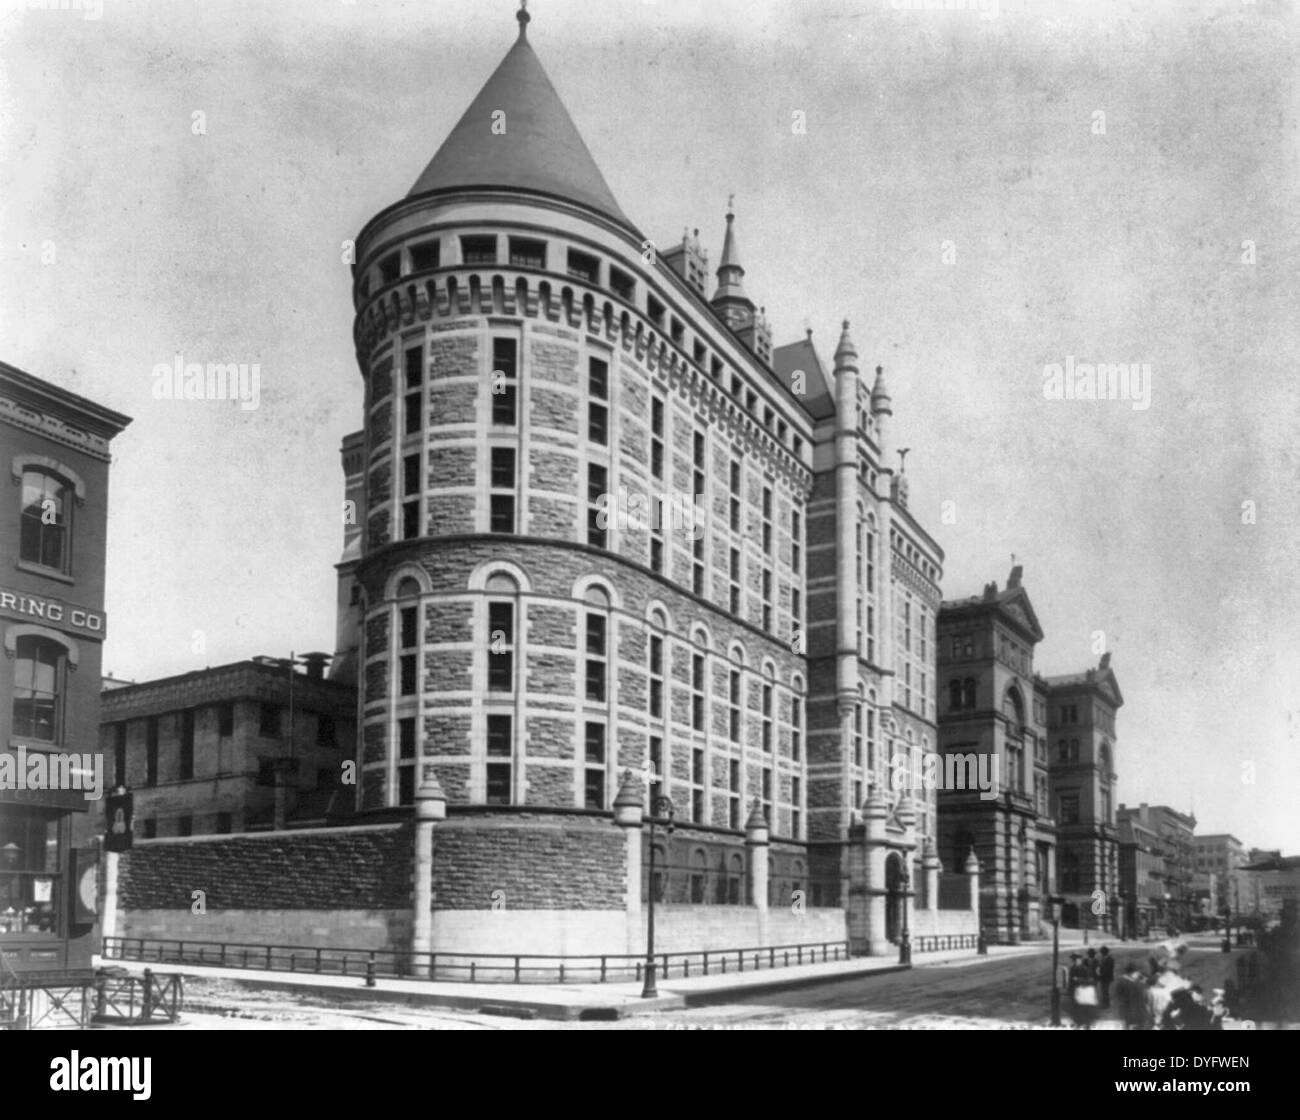 City Prison, New York City, 1904 - Stock Image